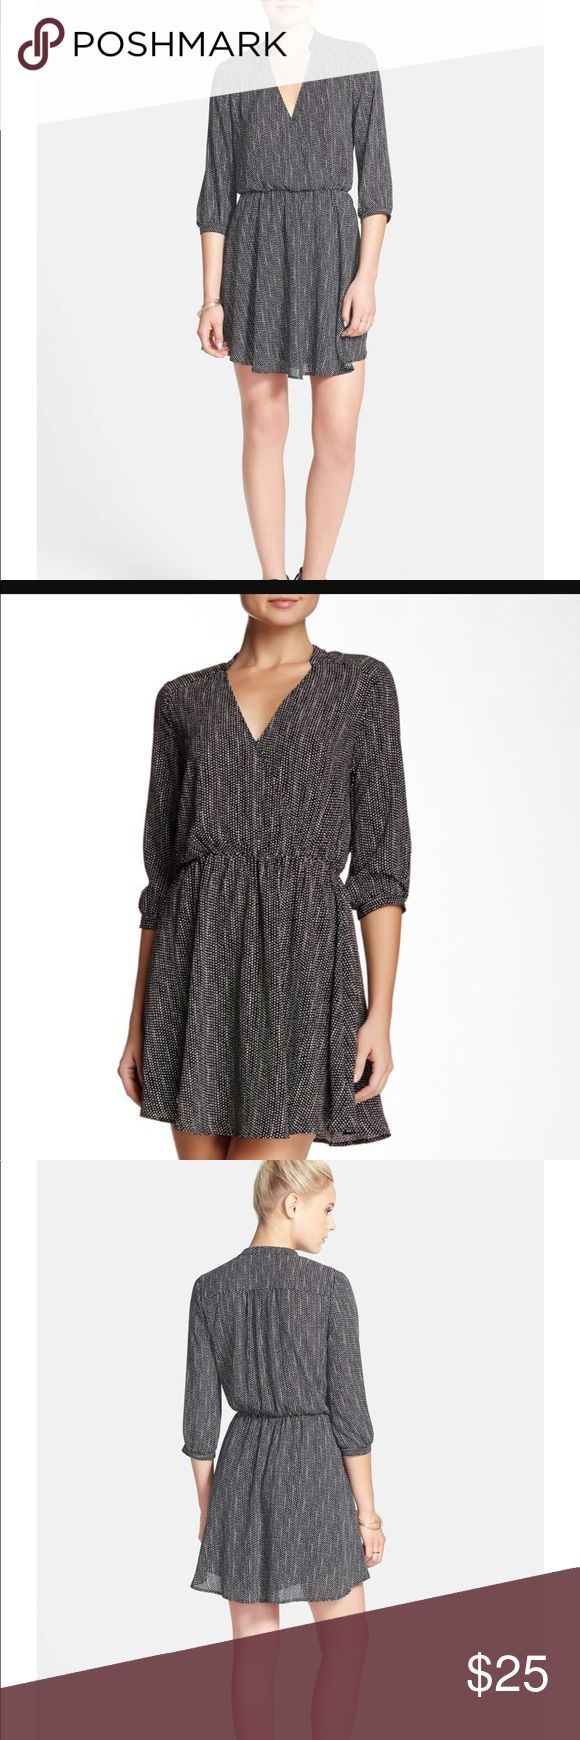 """Lush """"KENDAL"""" Polka Dot Print Surplice Dress A banded neck and cuffs add chic sophistication to a faux-wrap dress with a soft, flowy silhouette. New with tag / never worn. Great for work or night out Lush Dresses"""